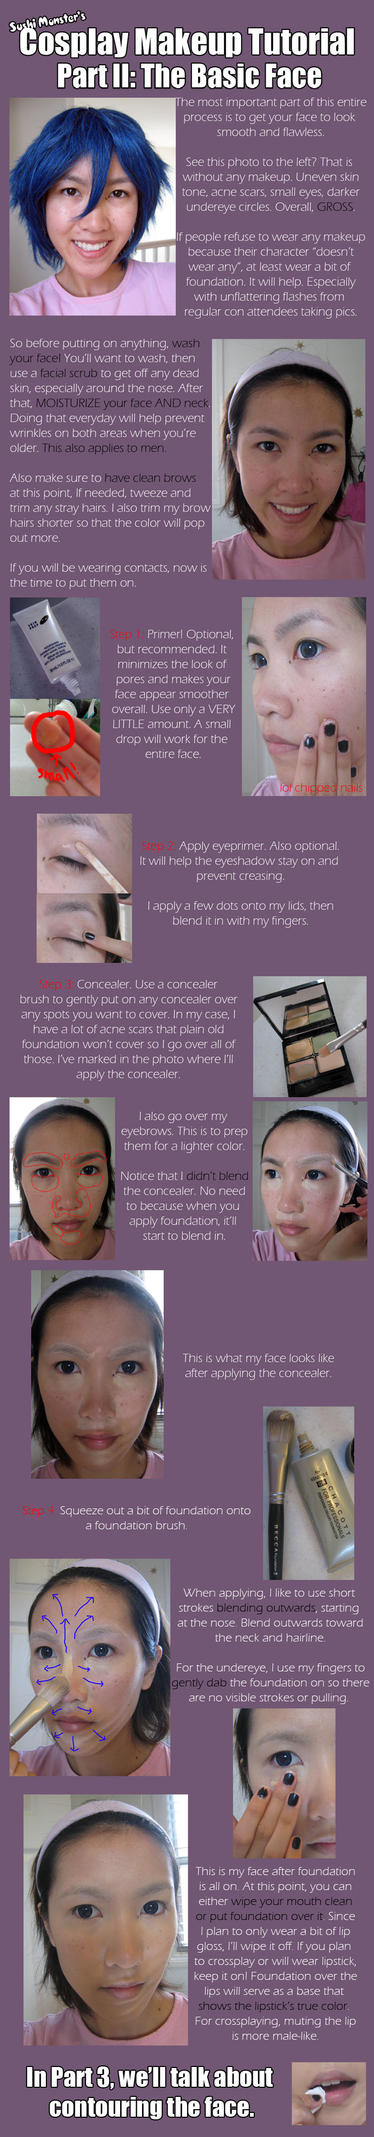 Cos Makeup Tutorial Part II by the-sushi-monster